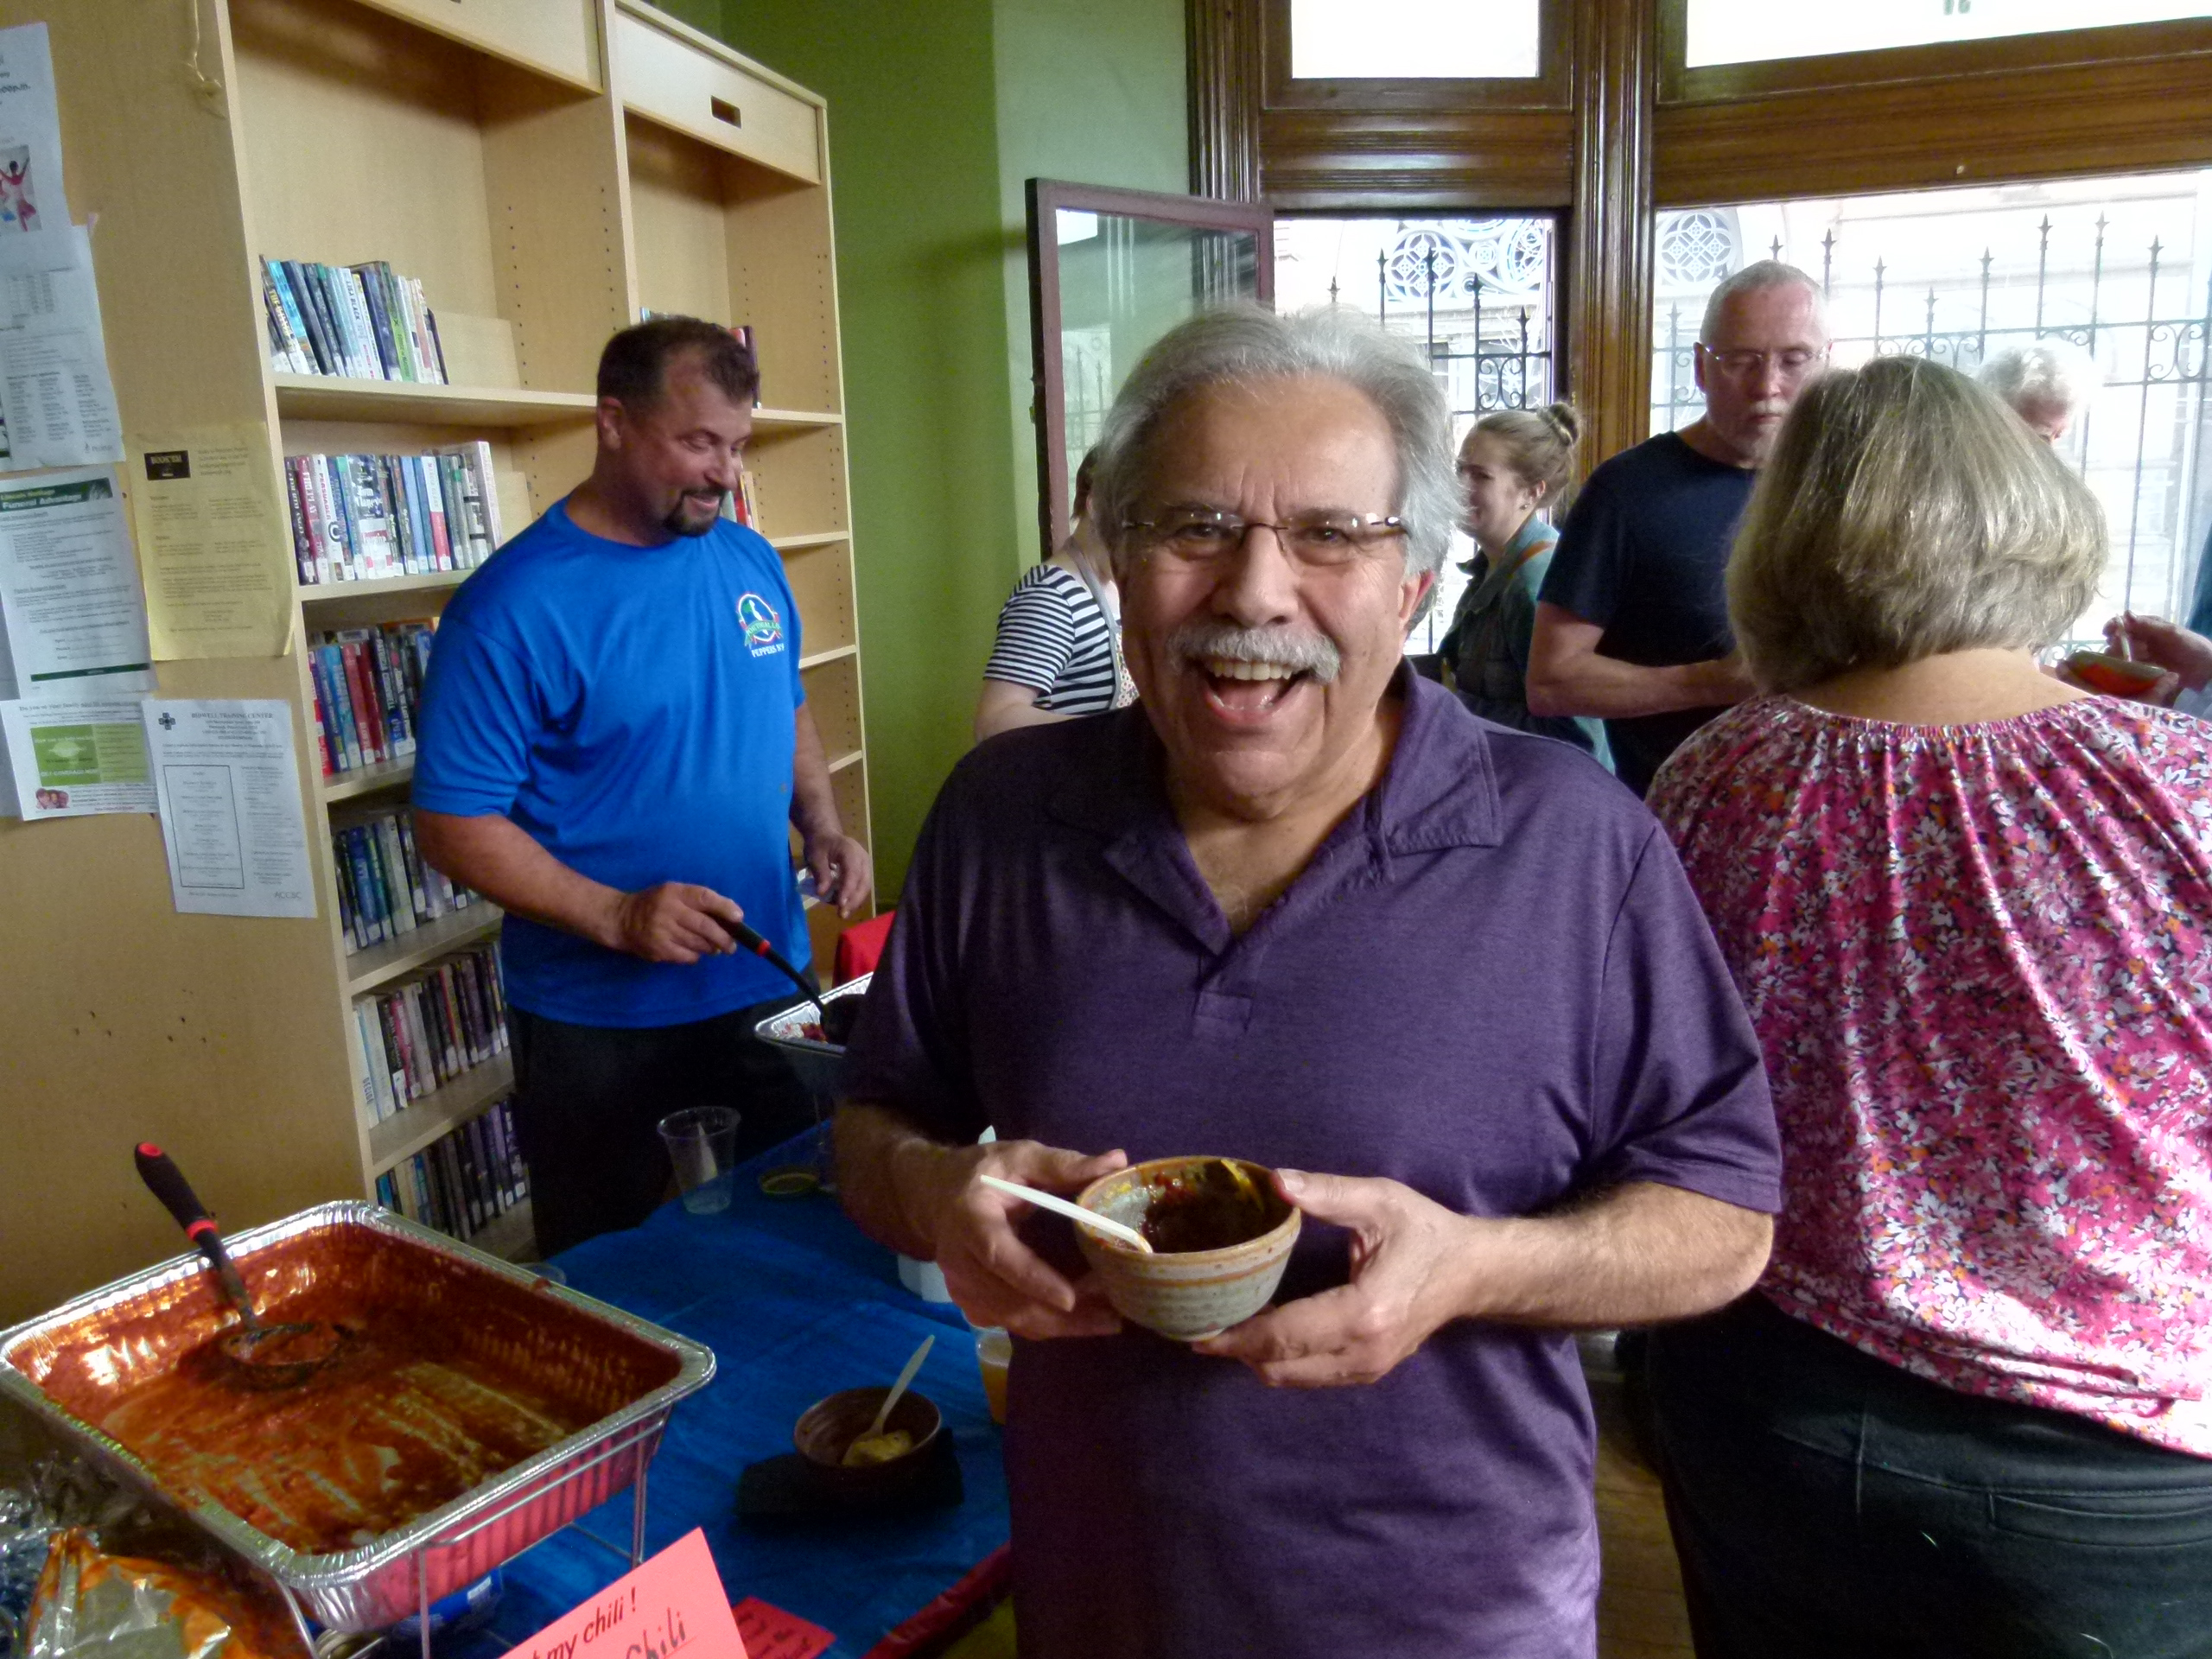 Oh look, it's noted filmmaker Tony Buba who hails from the neighborhood. Everybody loves chili!